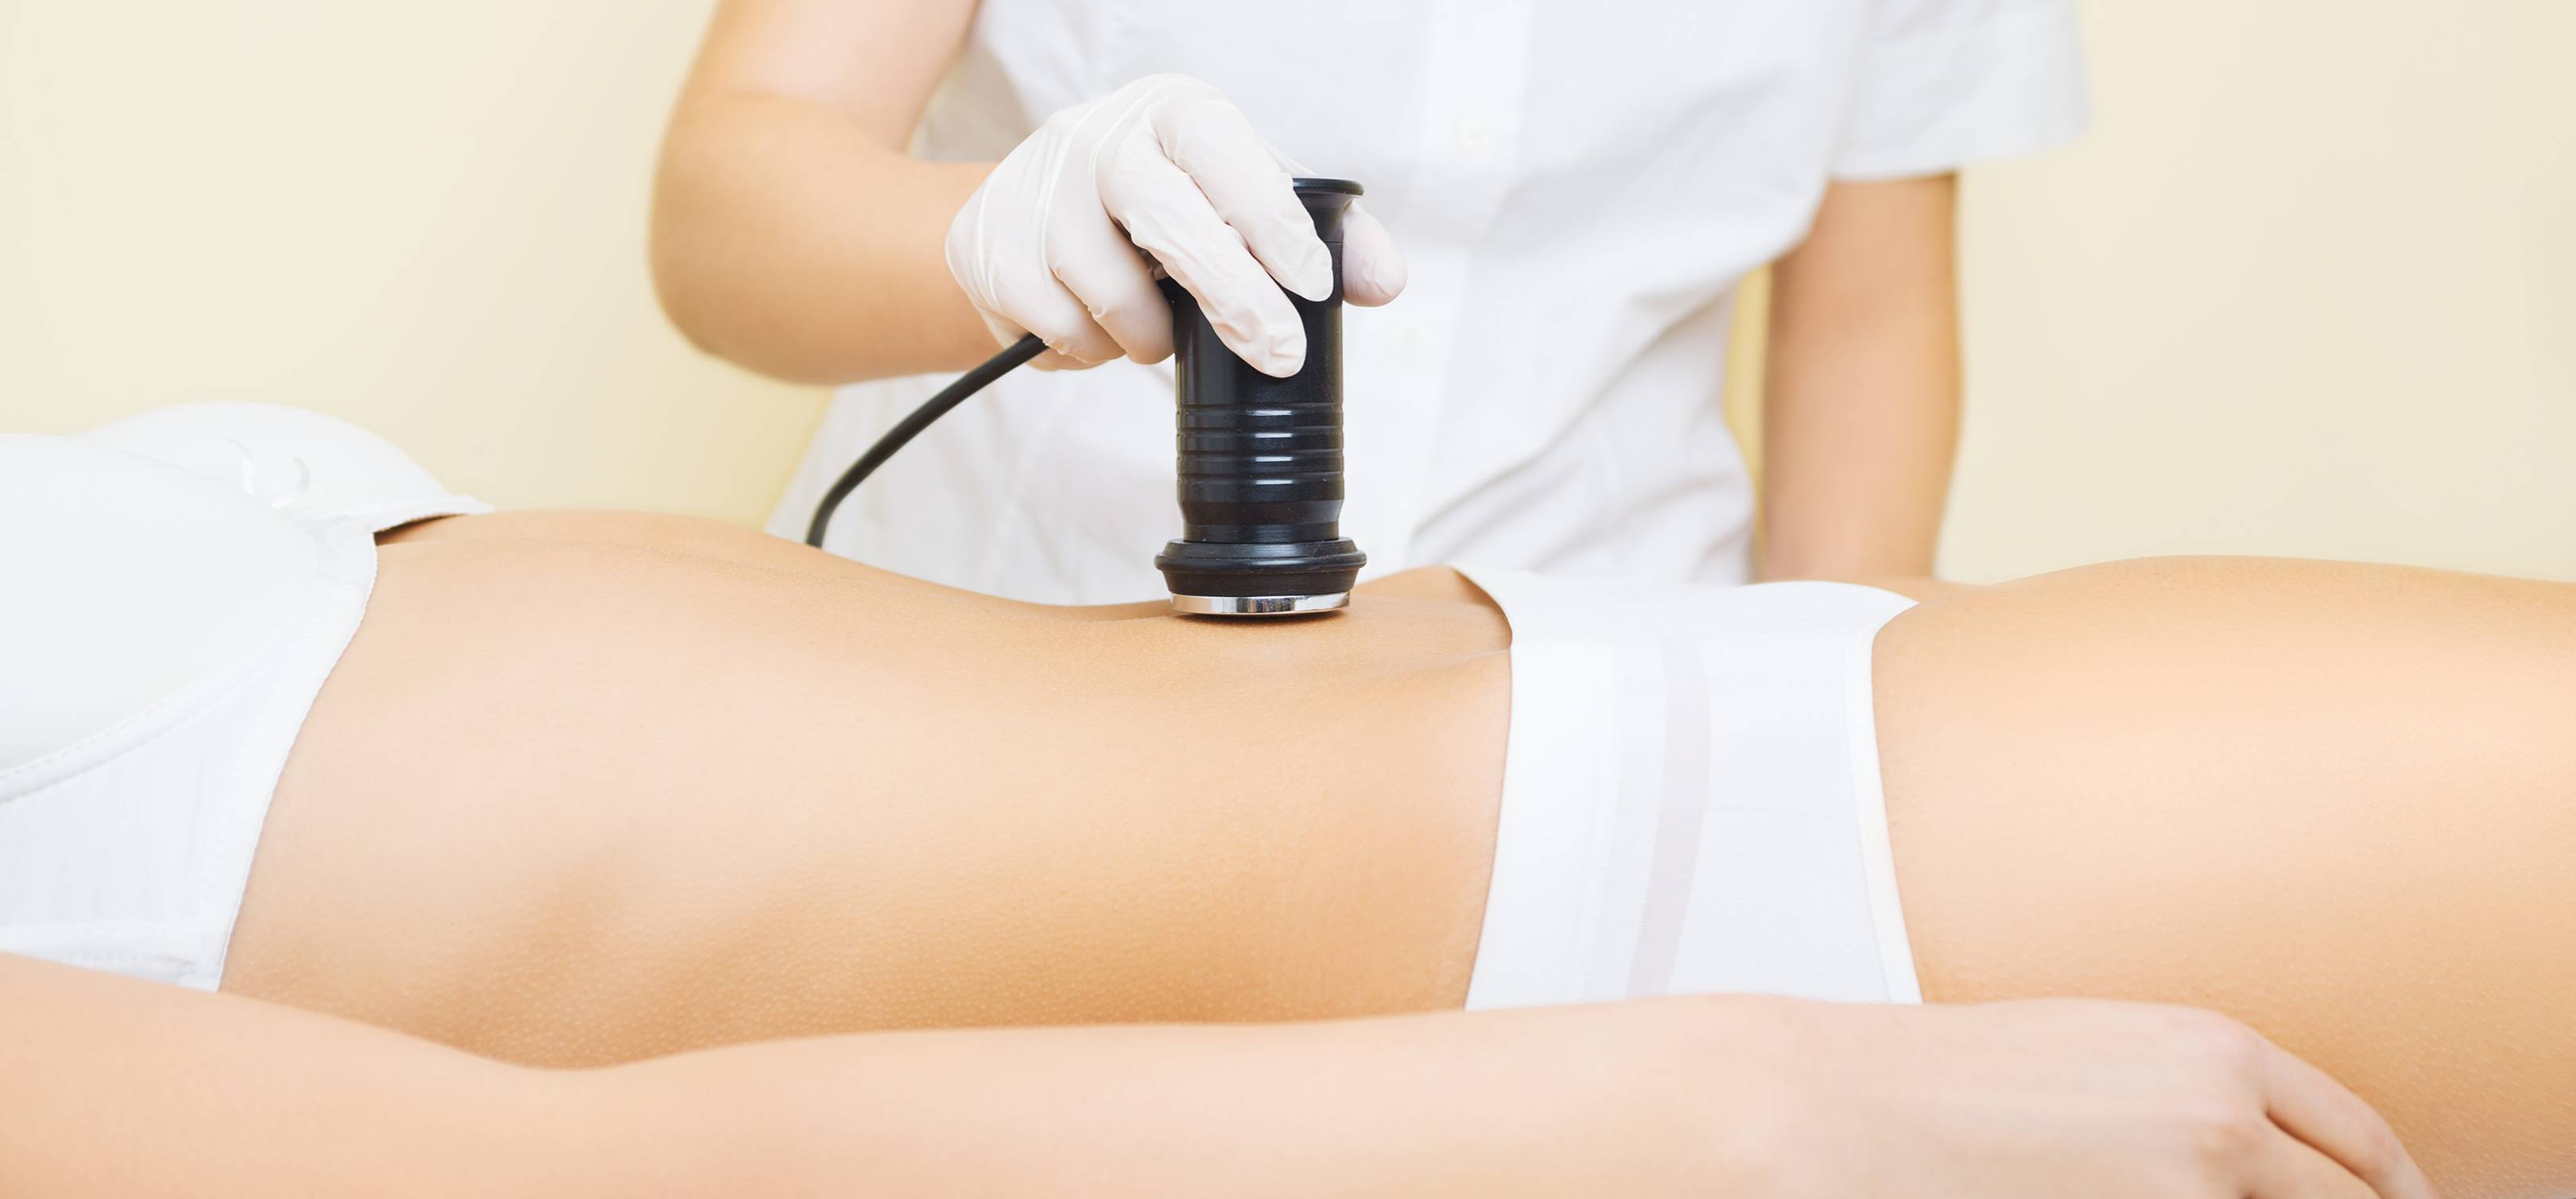 Body-Sculpting Treatments: What Are They And Do They Work? | Glamour UK